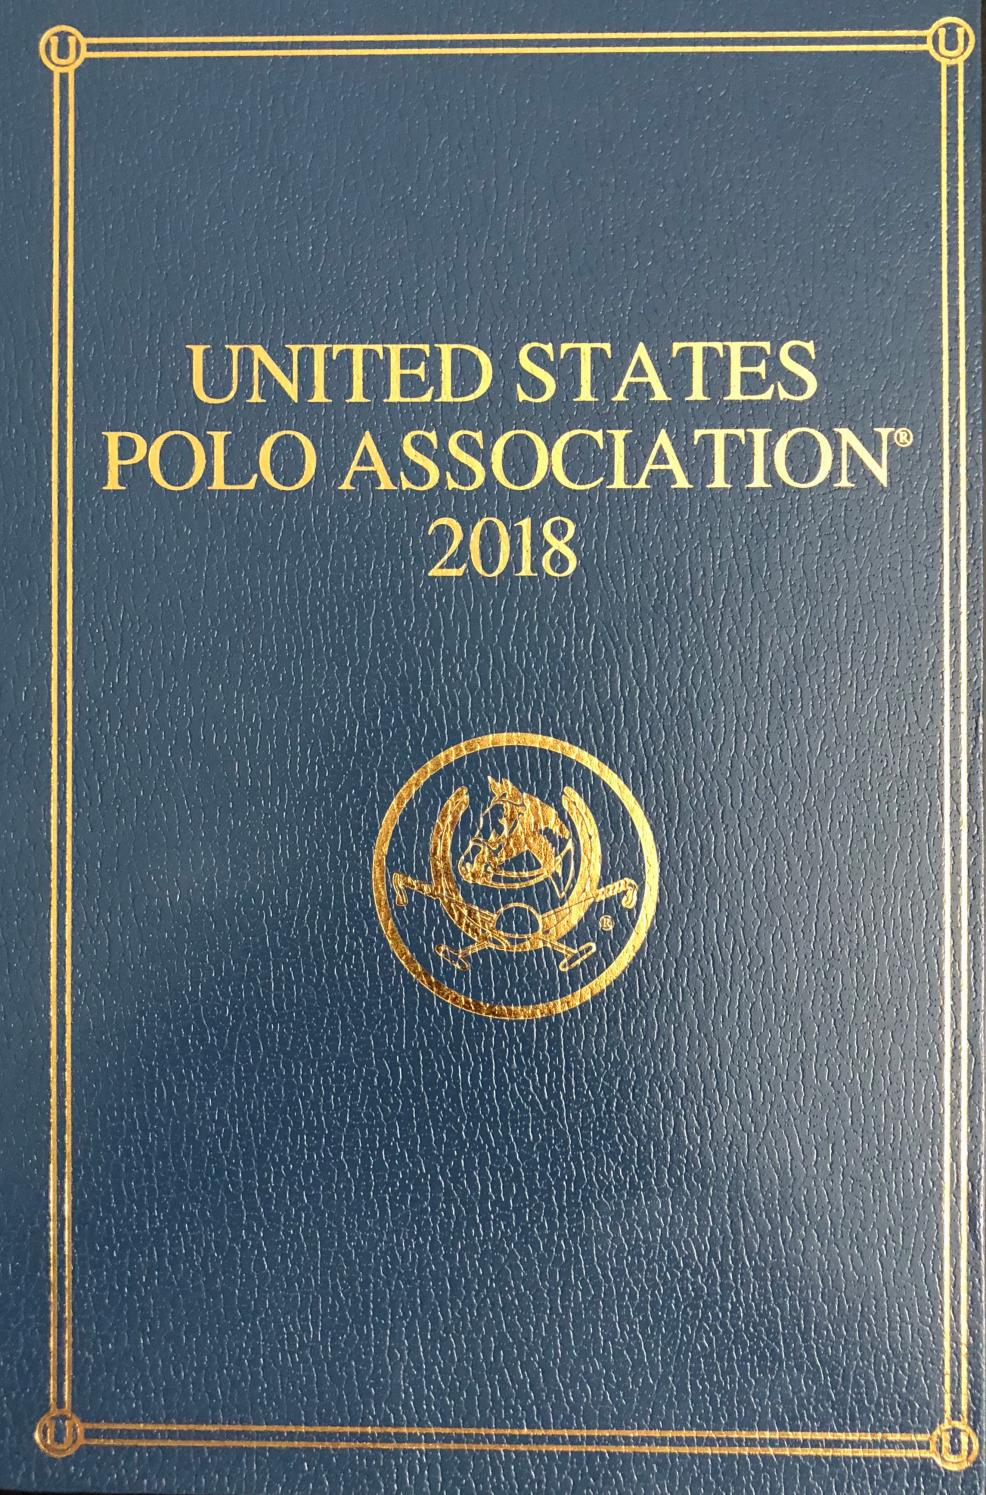 2018 Uspa Bluebook By United States Polo Association Issuu Ttec4841 Electrical Corey Leonard April 2011